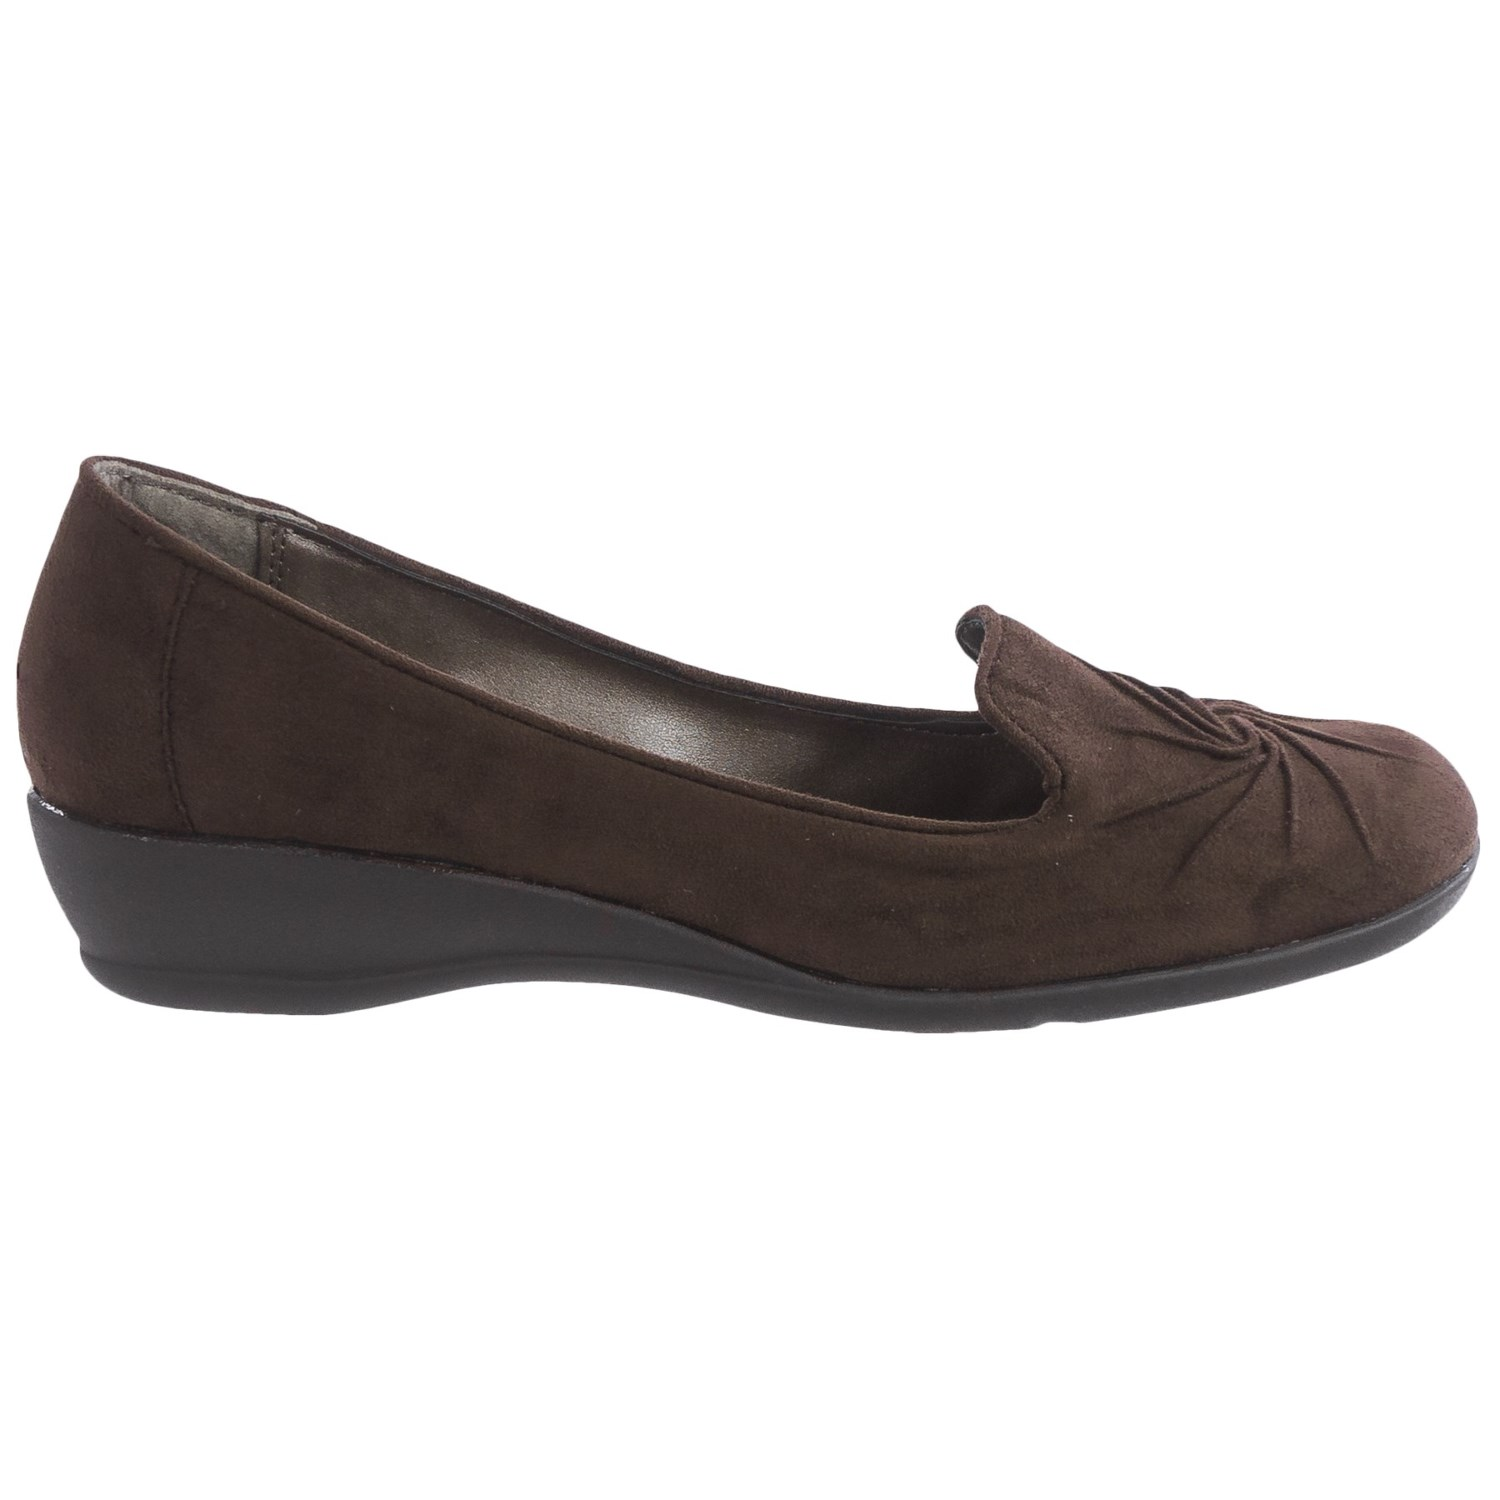 Hush Puppies Shoes Australia Stores